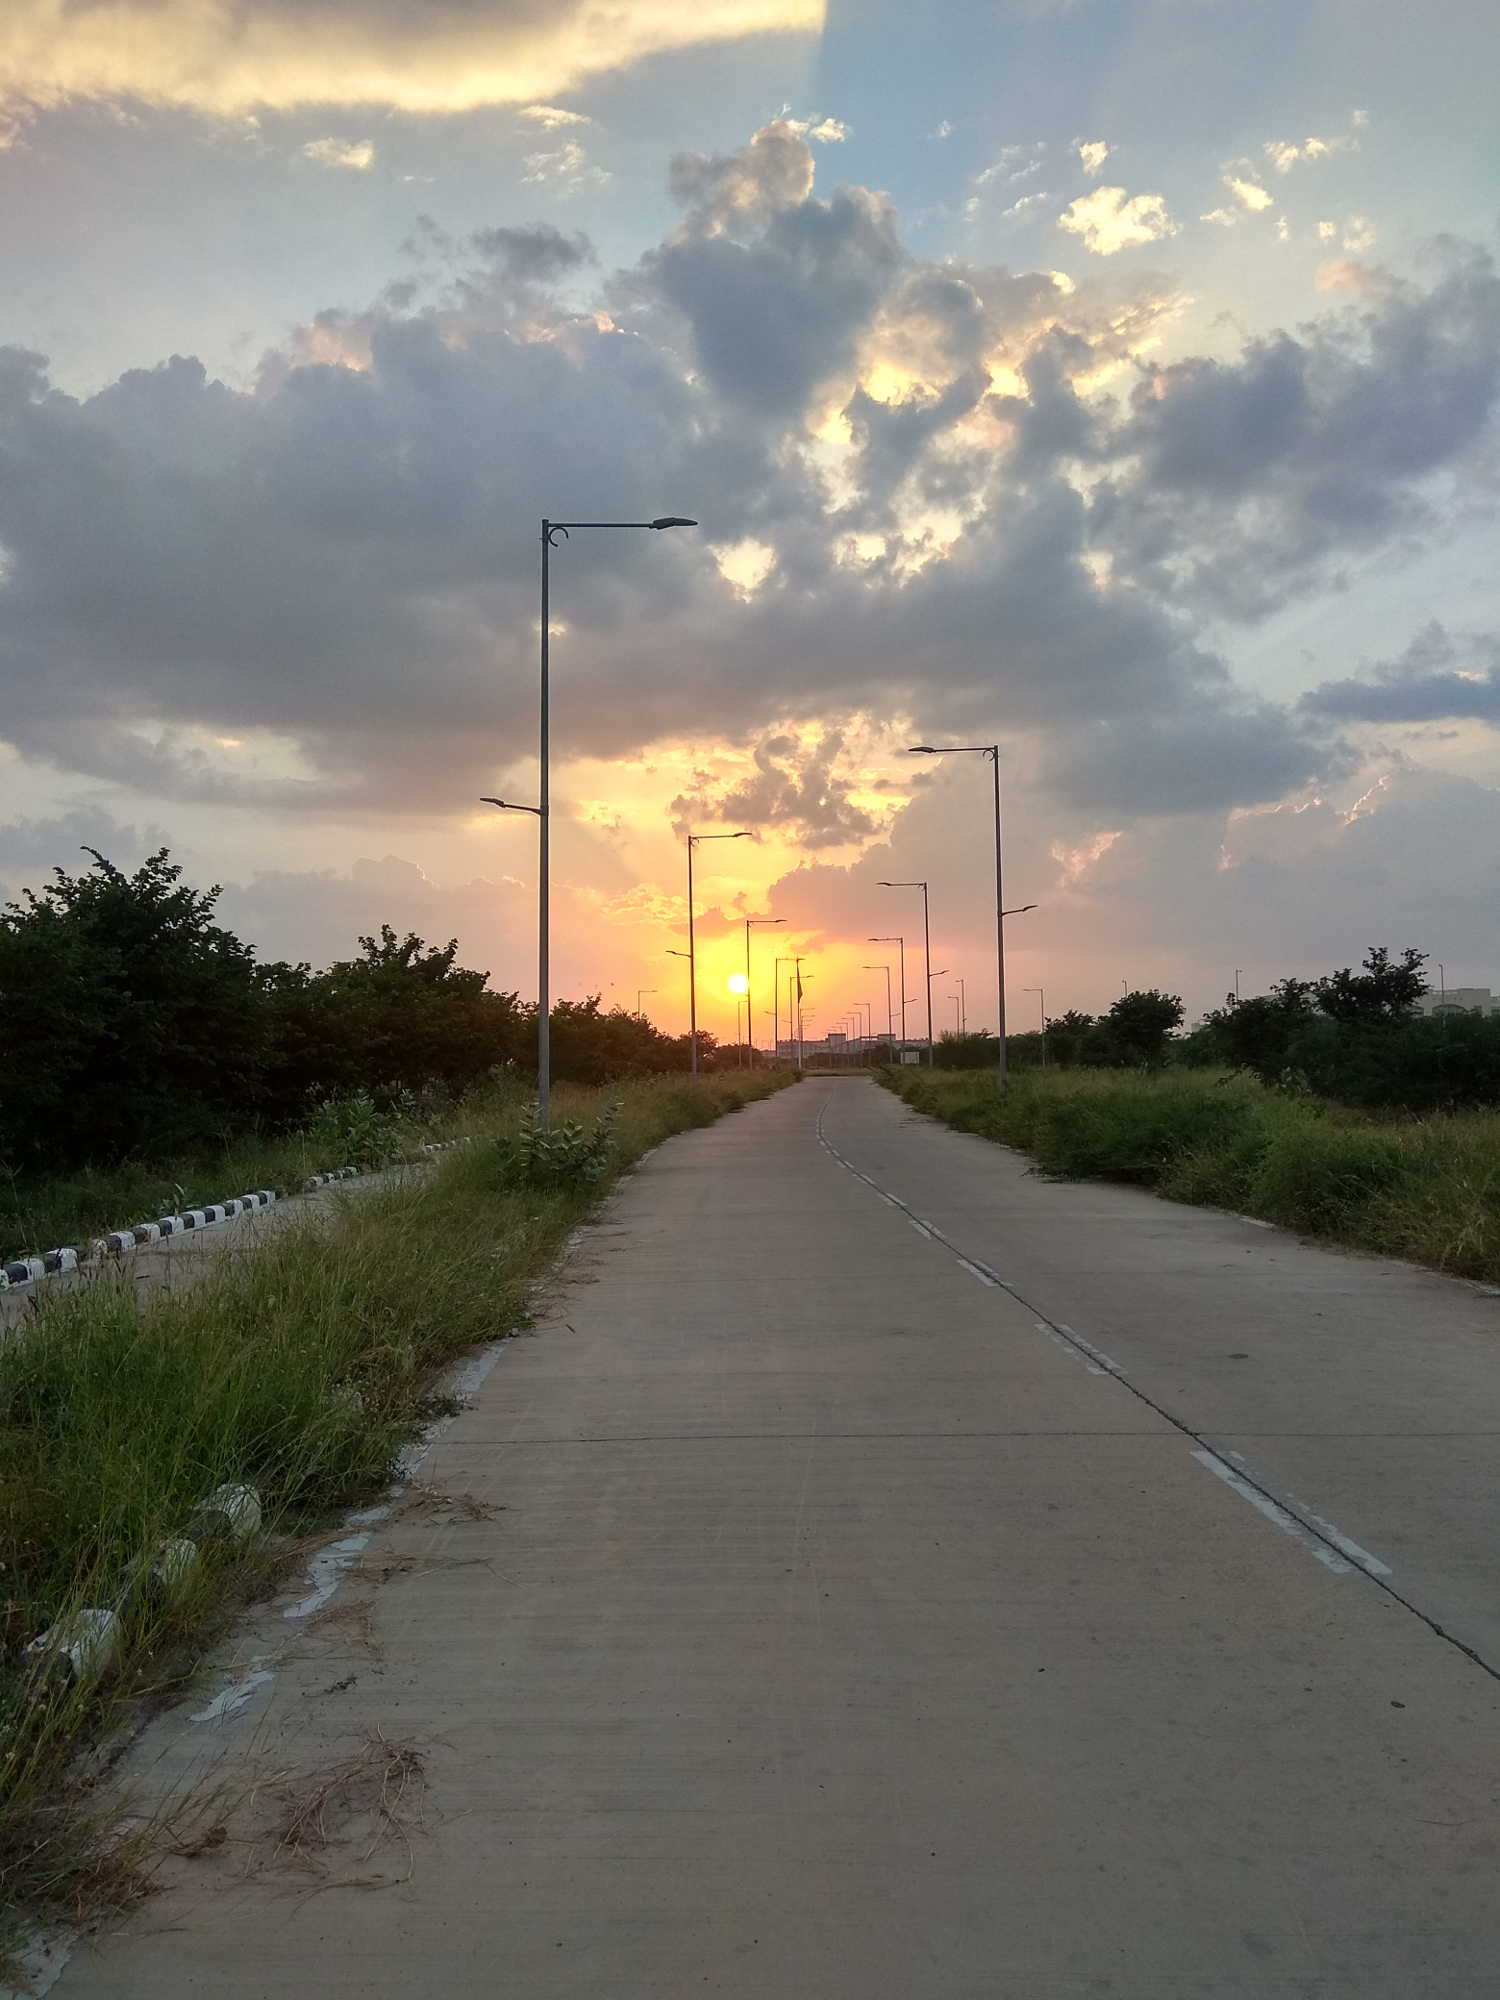 Sometimes we need to take the road less travelled to achieve our own success in life.